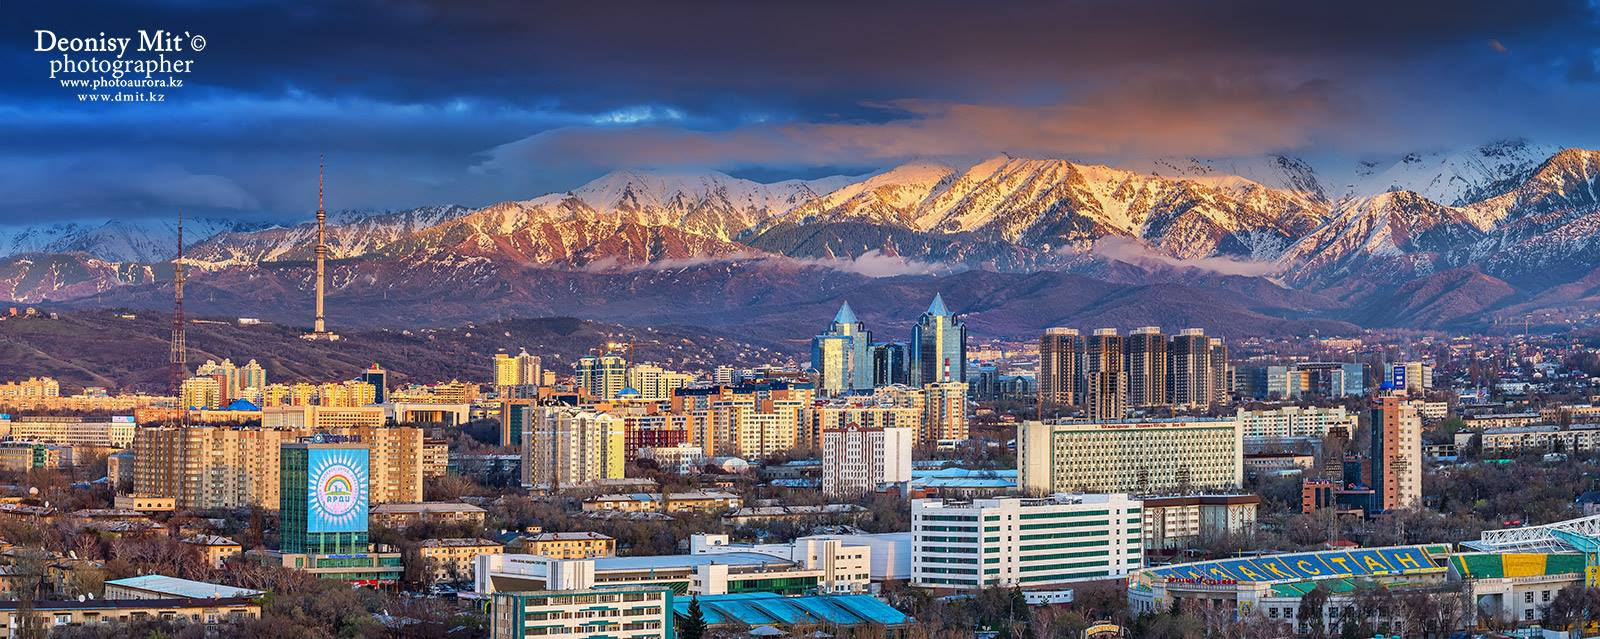 Almaty, former capital of Kazakhstan